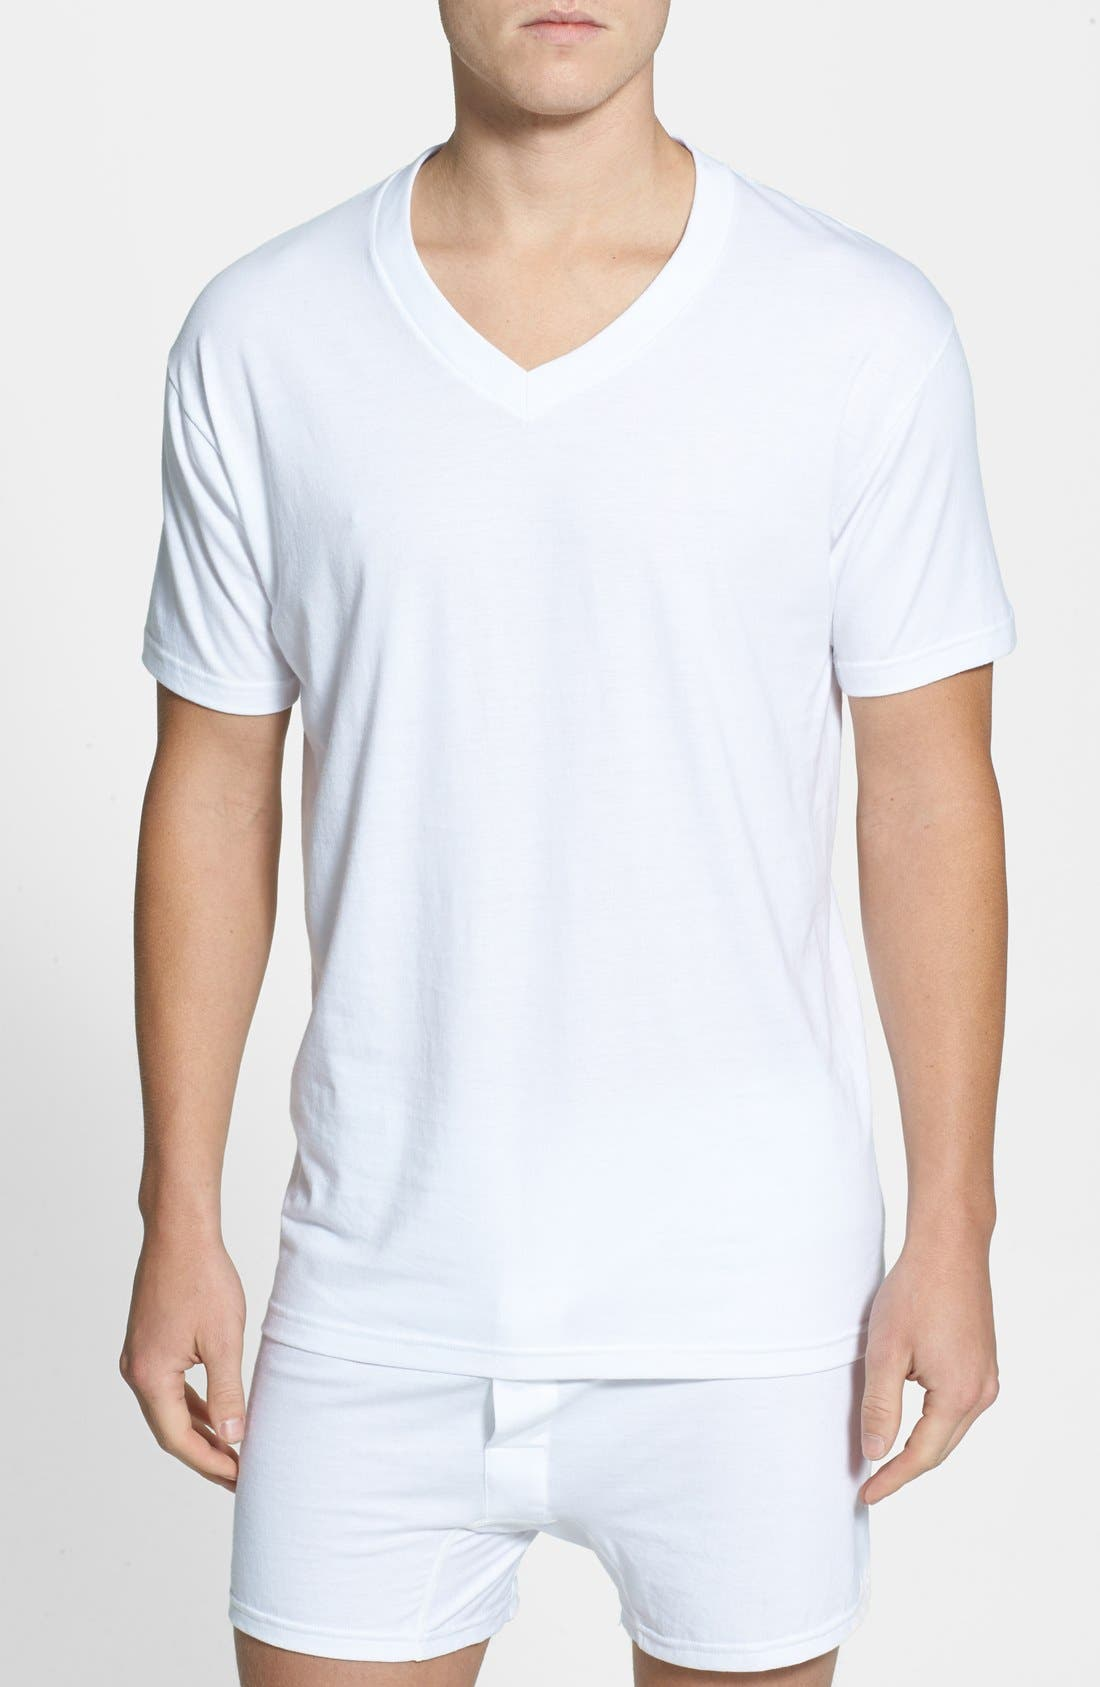 Nordstrom Men's Shop 4-Pack Regular Fit Supima® Cotton V-Neck T-Shirts